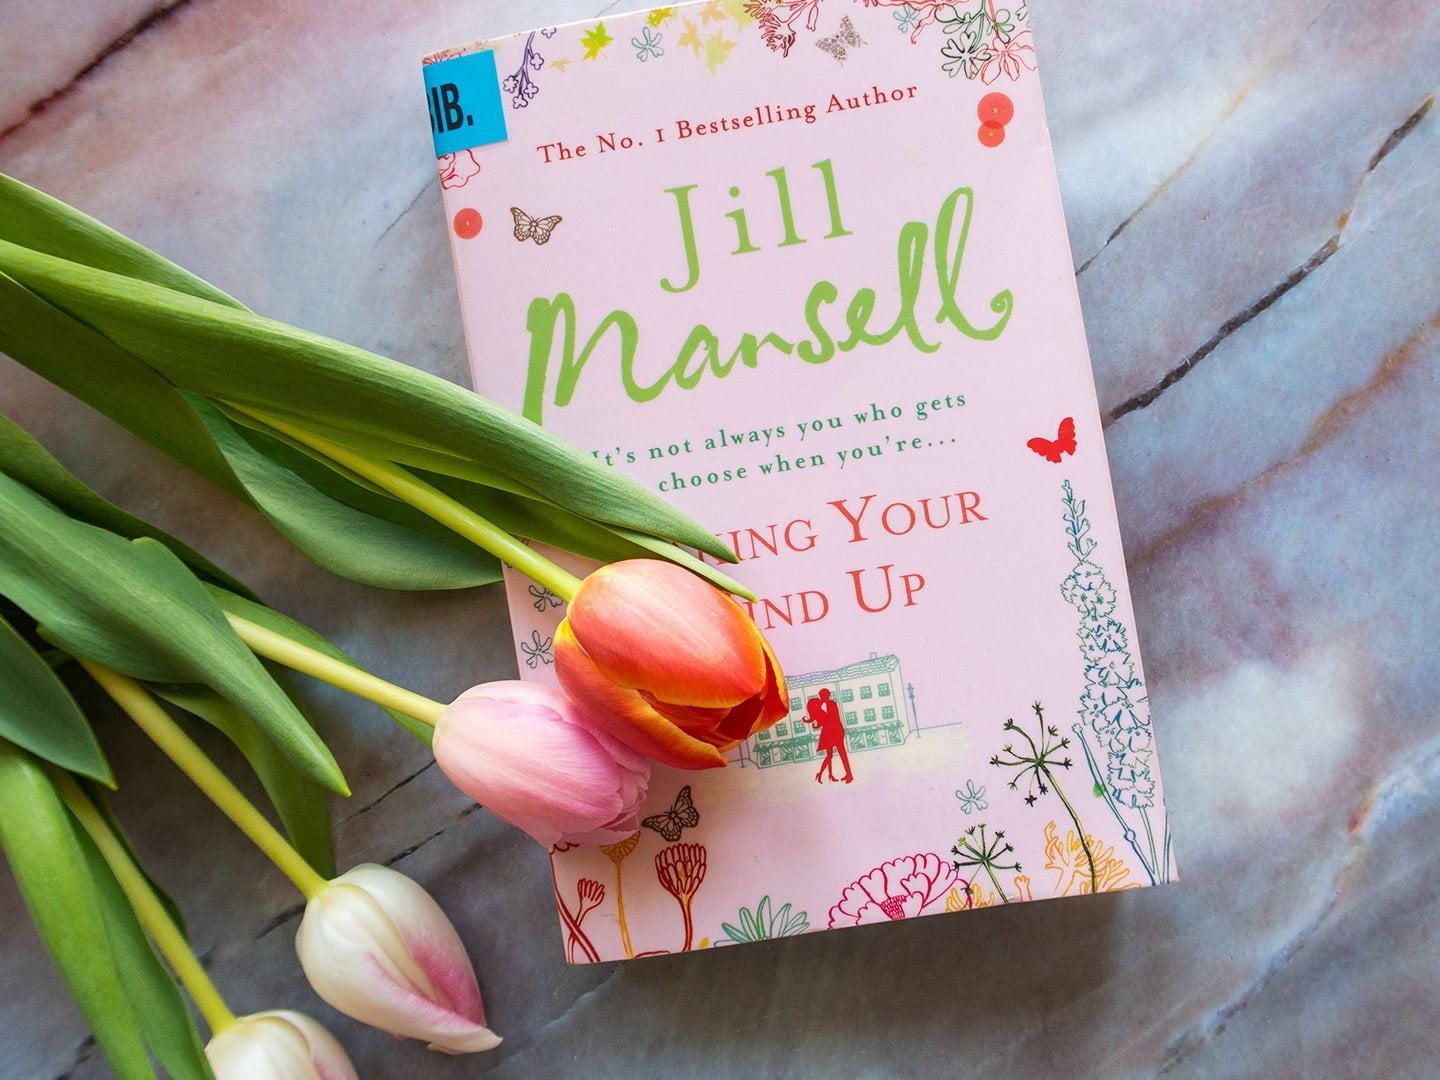 21 Popular Rom-Com Books that Can Entertain You During The Self-Isolation Days